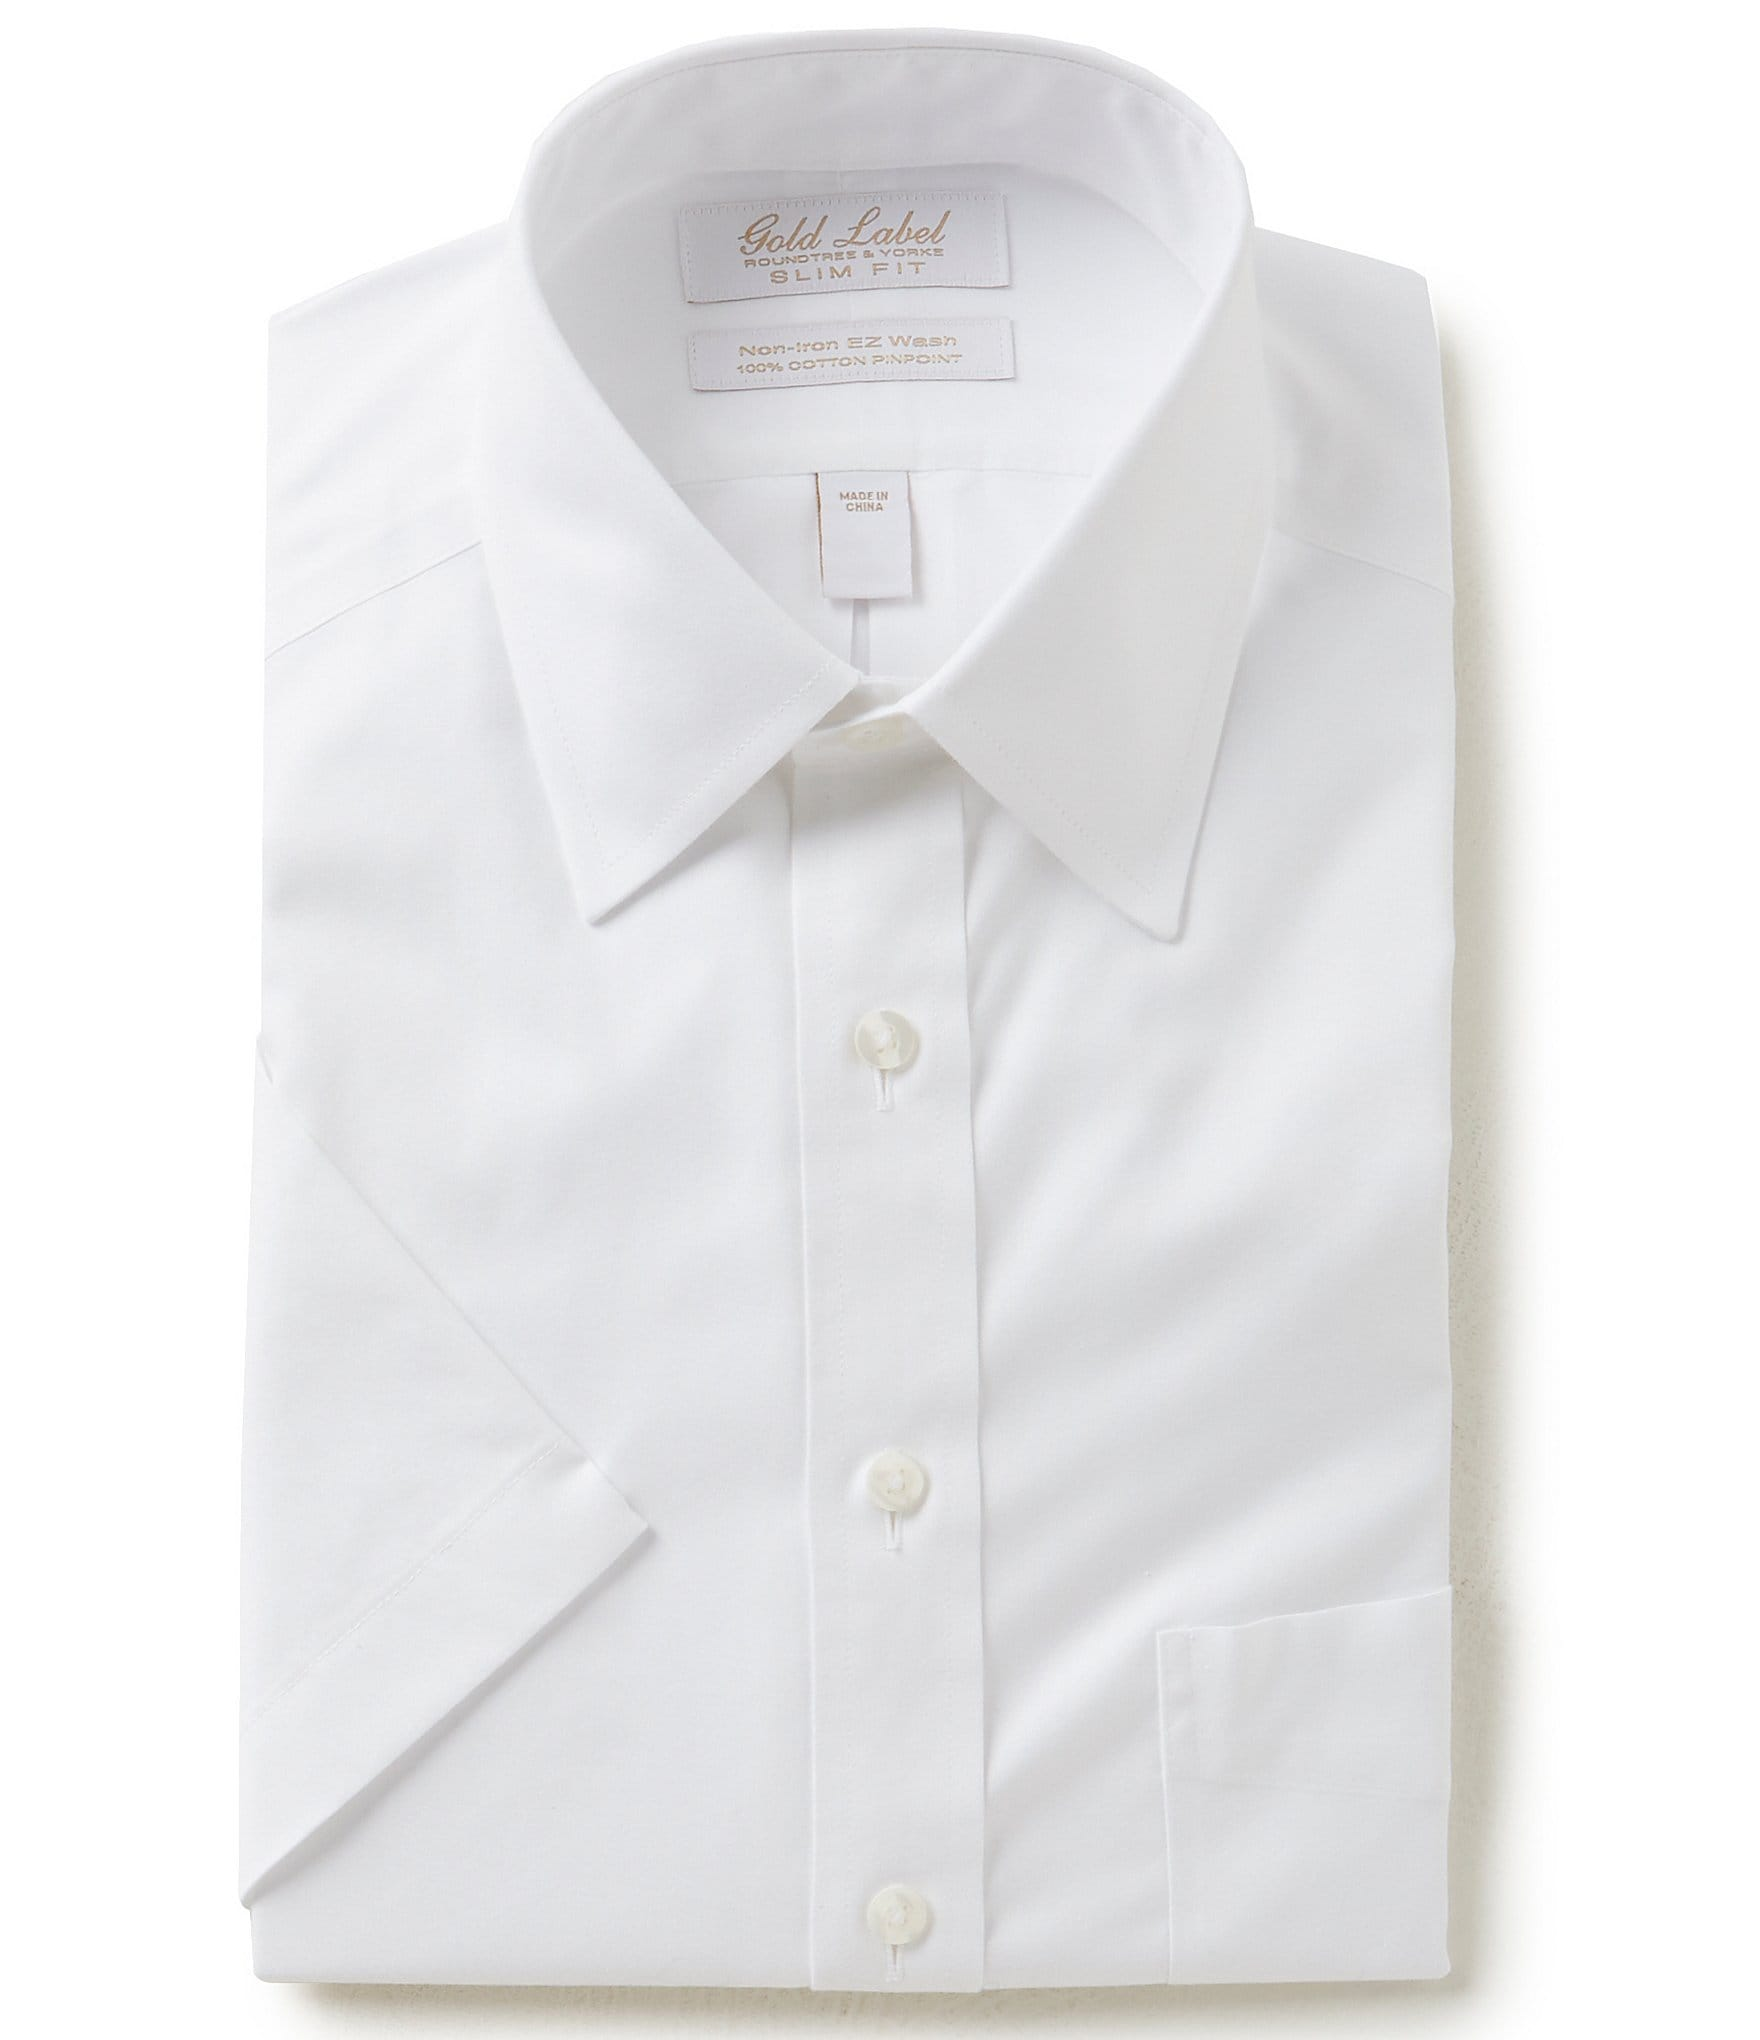 Gold label roundtree yorke non iron slim fit point for Mens short sleeve white dress shirt